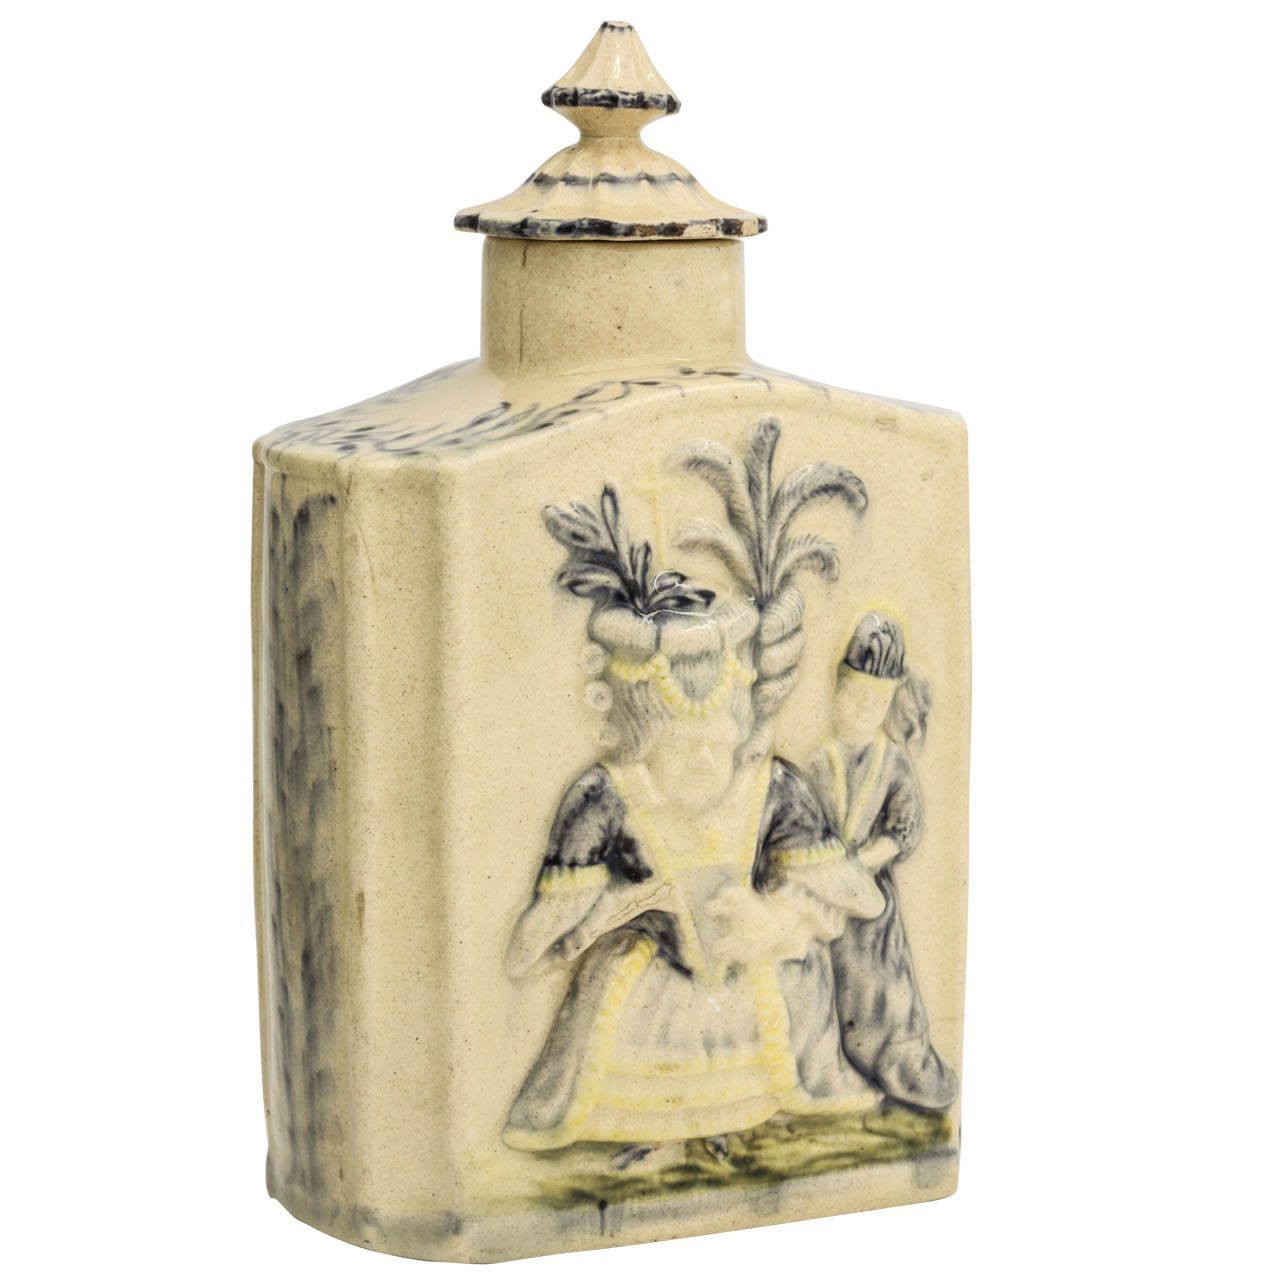 A Fine English Creamware Pottery Covered Tea Caddy With Macaroni Figures | From a unique collection of antique and modern pottery at https://www.1stdibs.com/furniture/dining-entertaining/pottery/